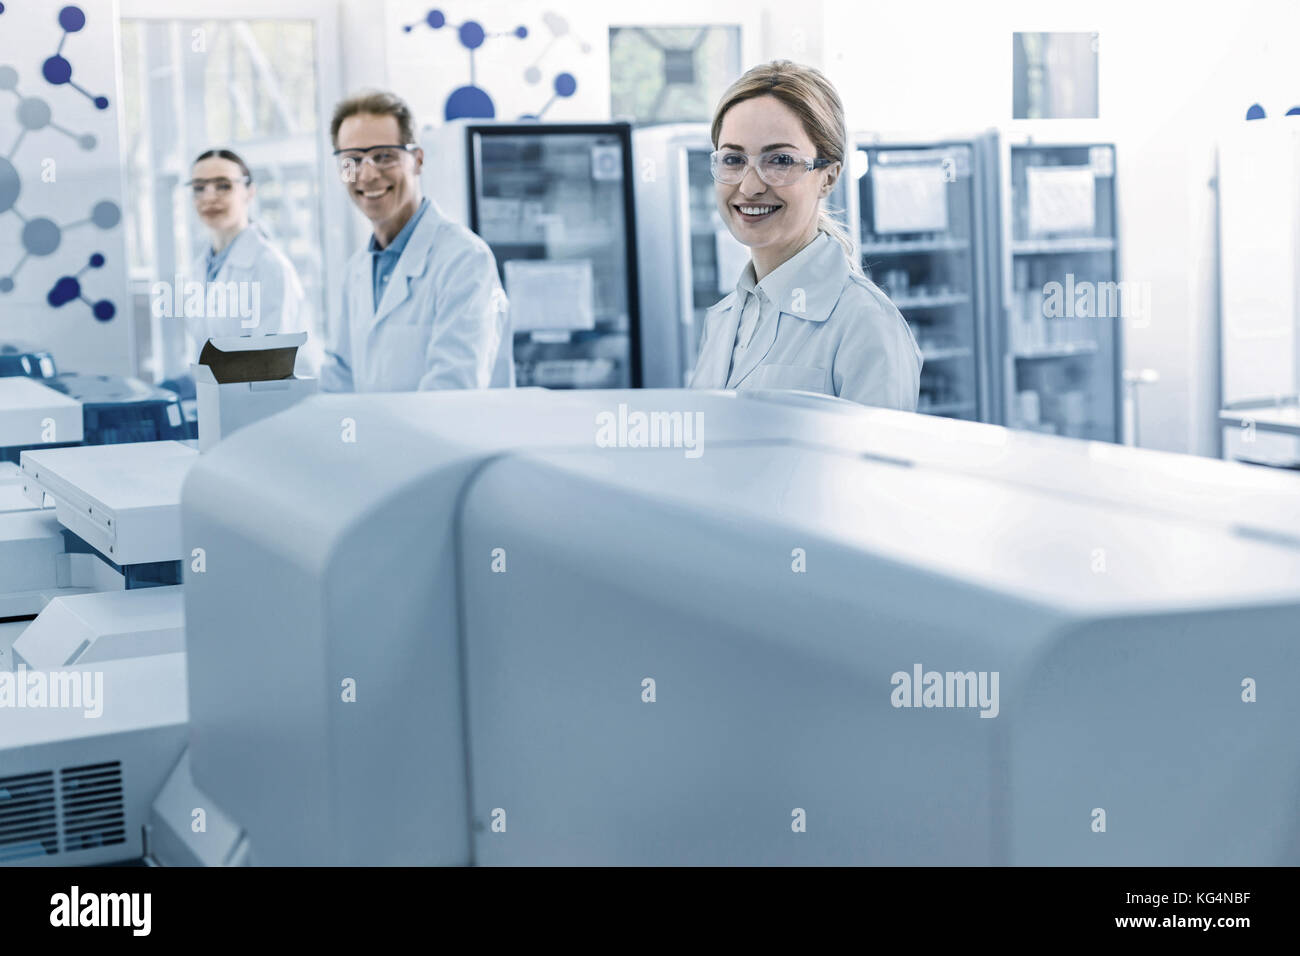 Delighted professional scientists smiling - Stock Image